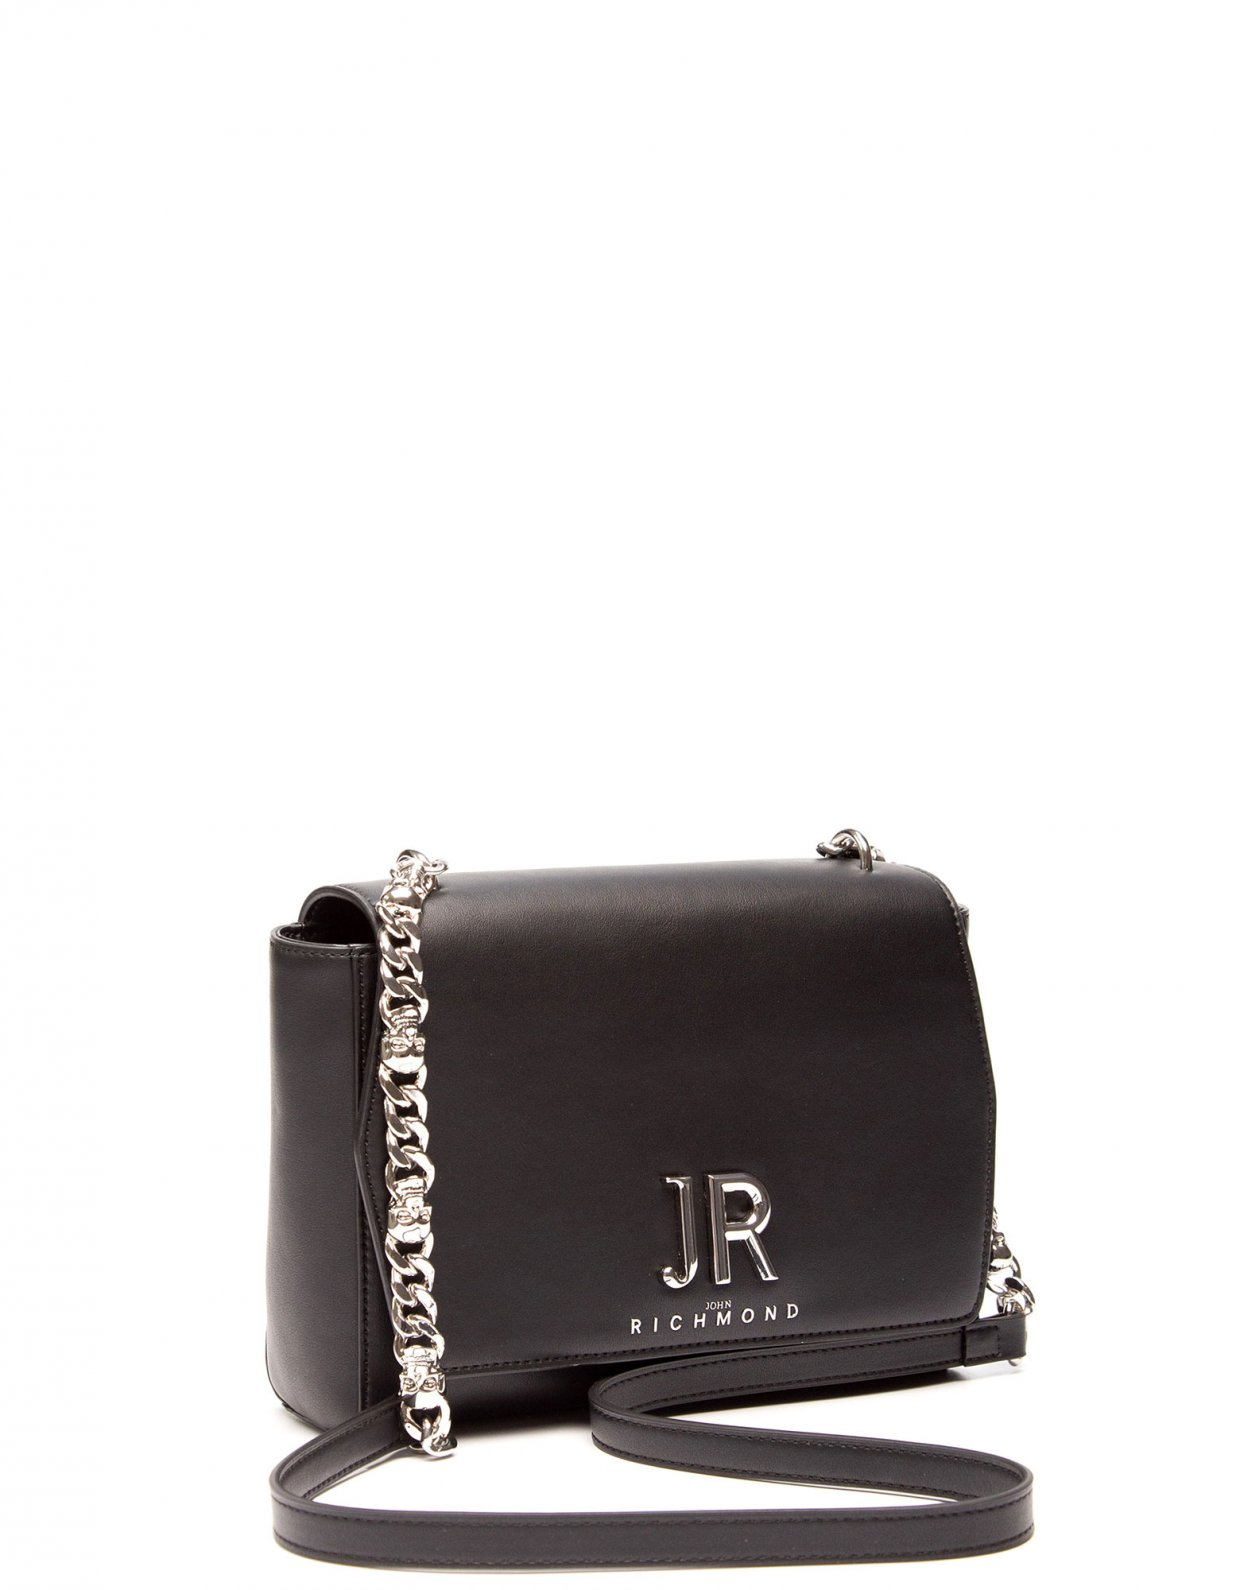 John Richmond Shoulder bag Cimmone